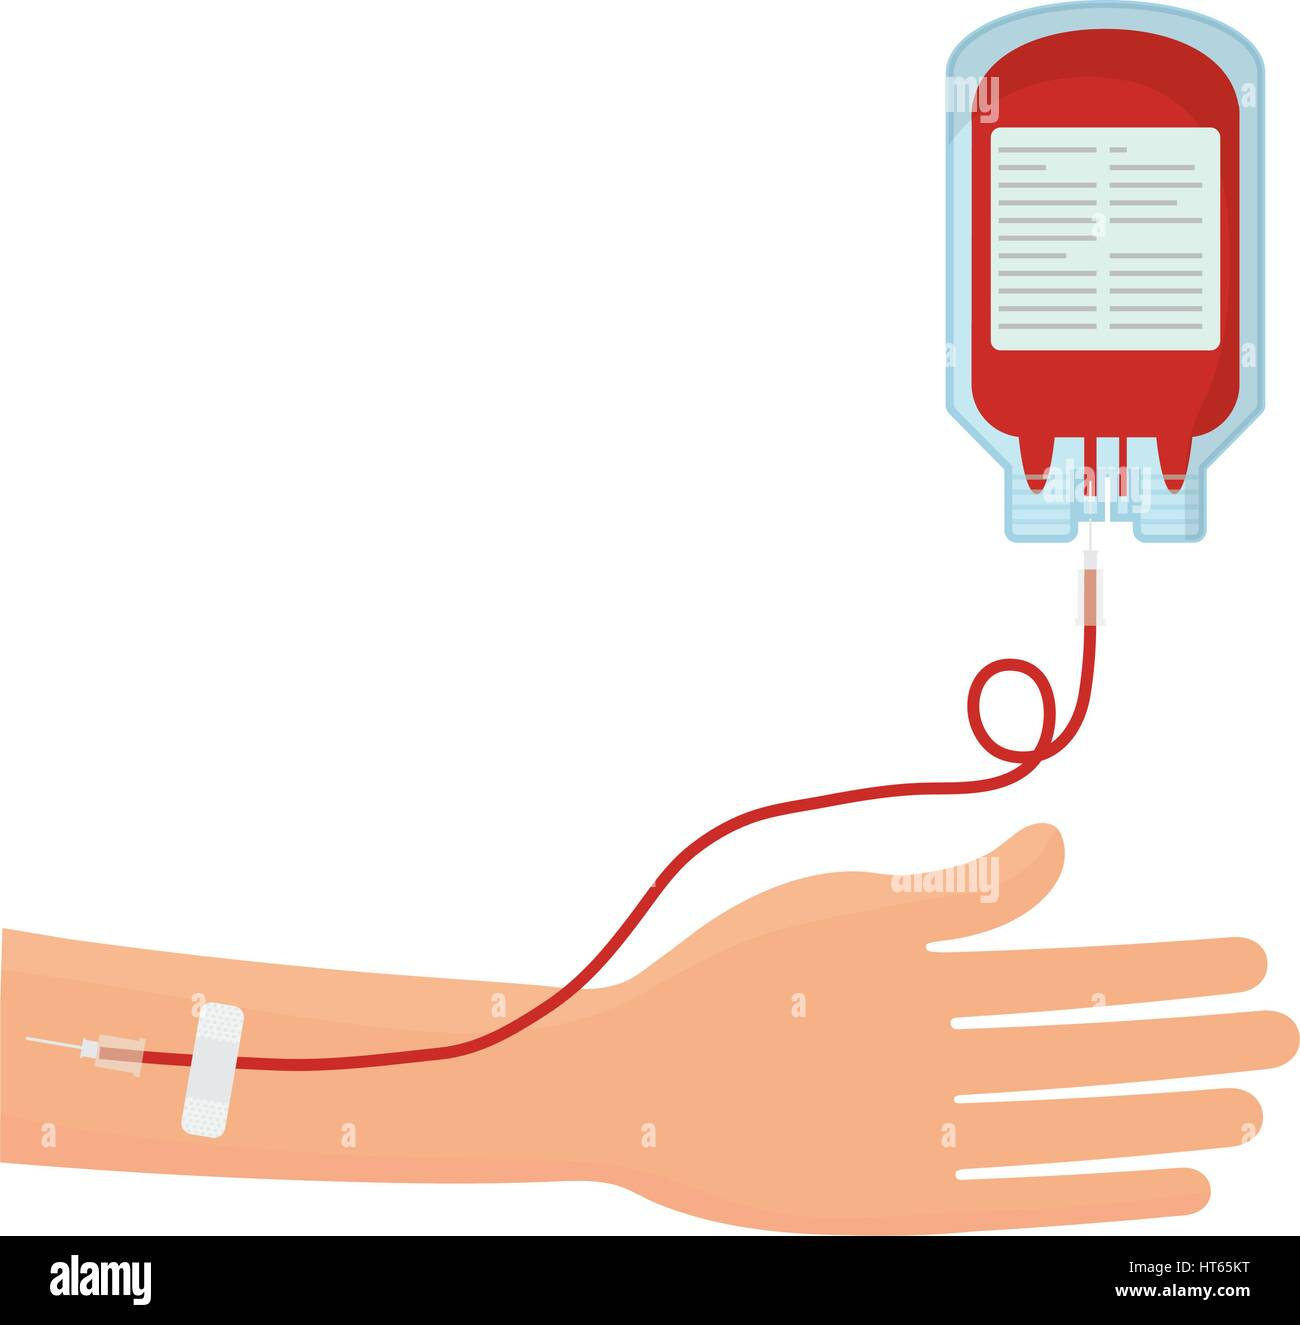 blood donation hand with bag tube - Stock Image